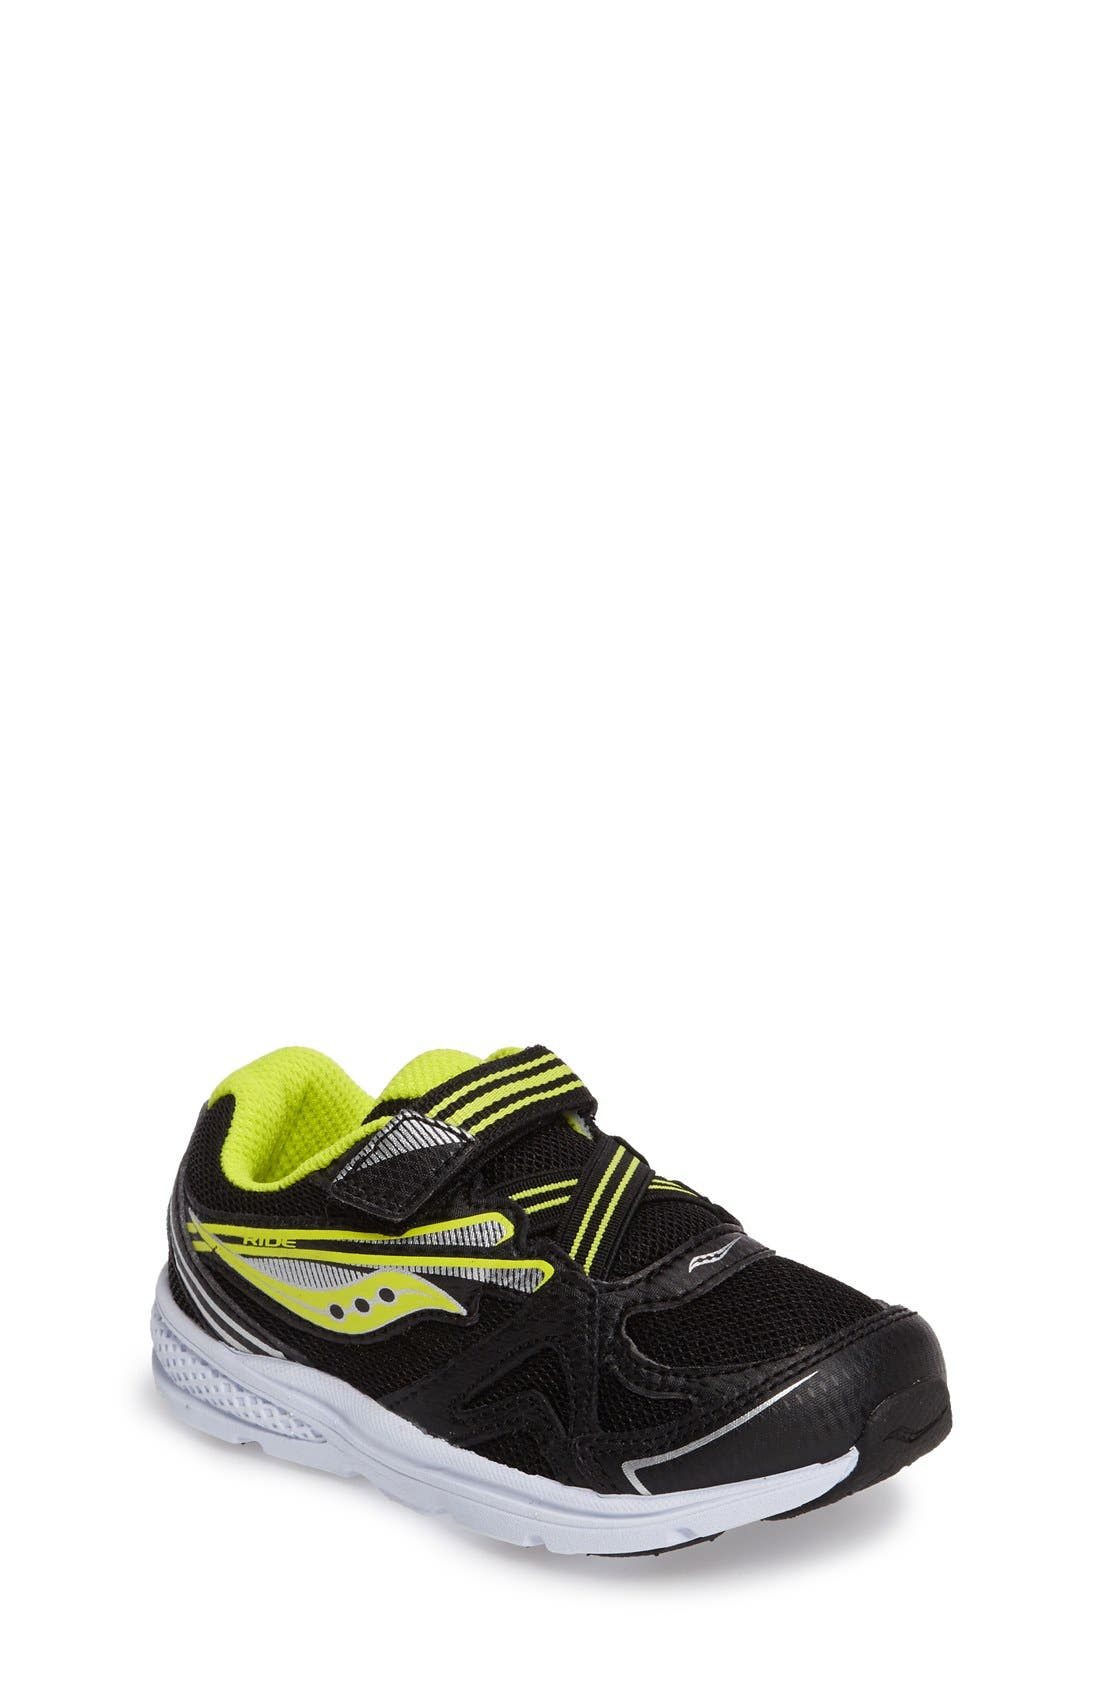 Baby Ride Sneaker,                             Main thumbnail 1, color,